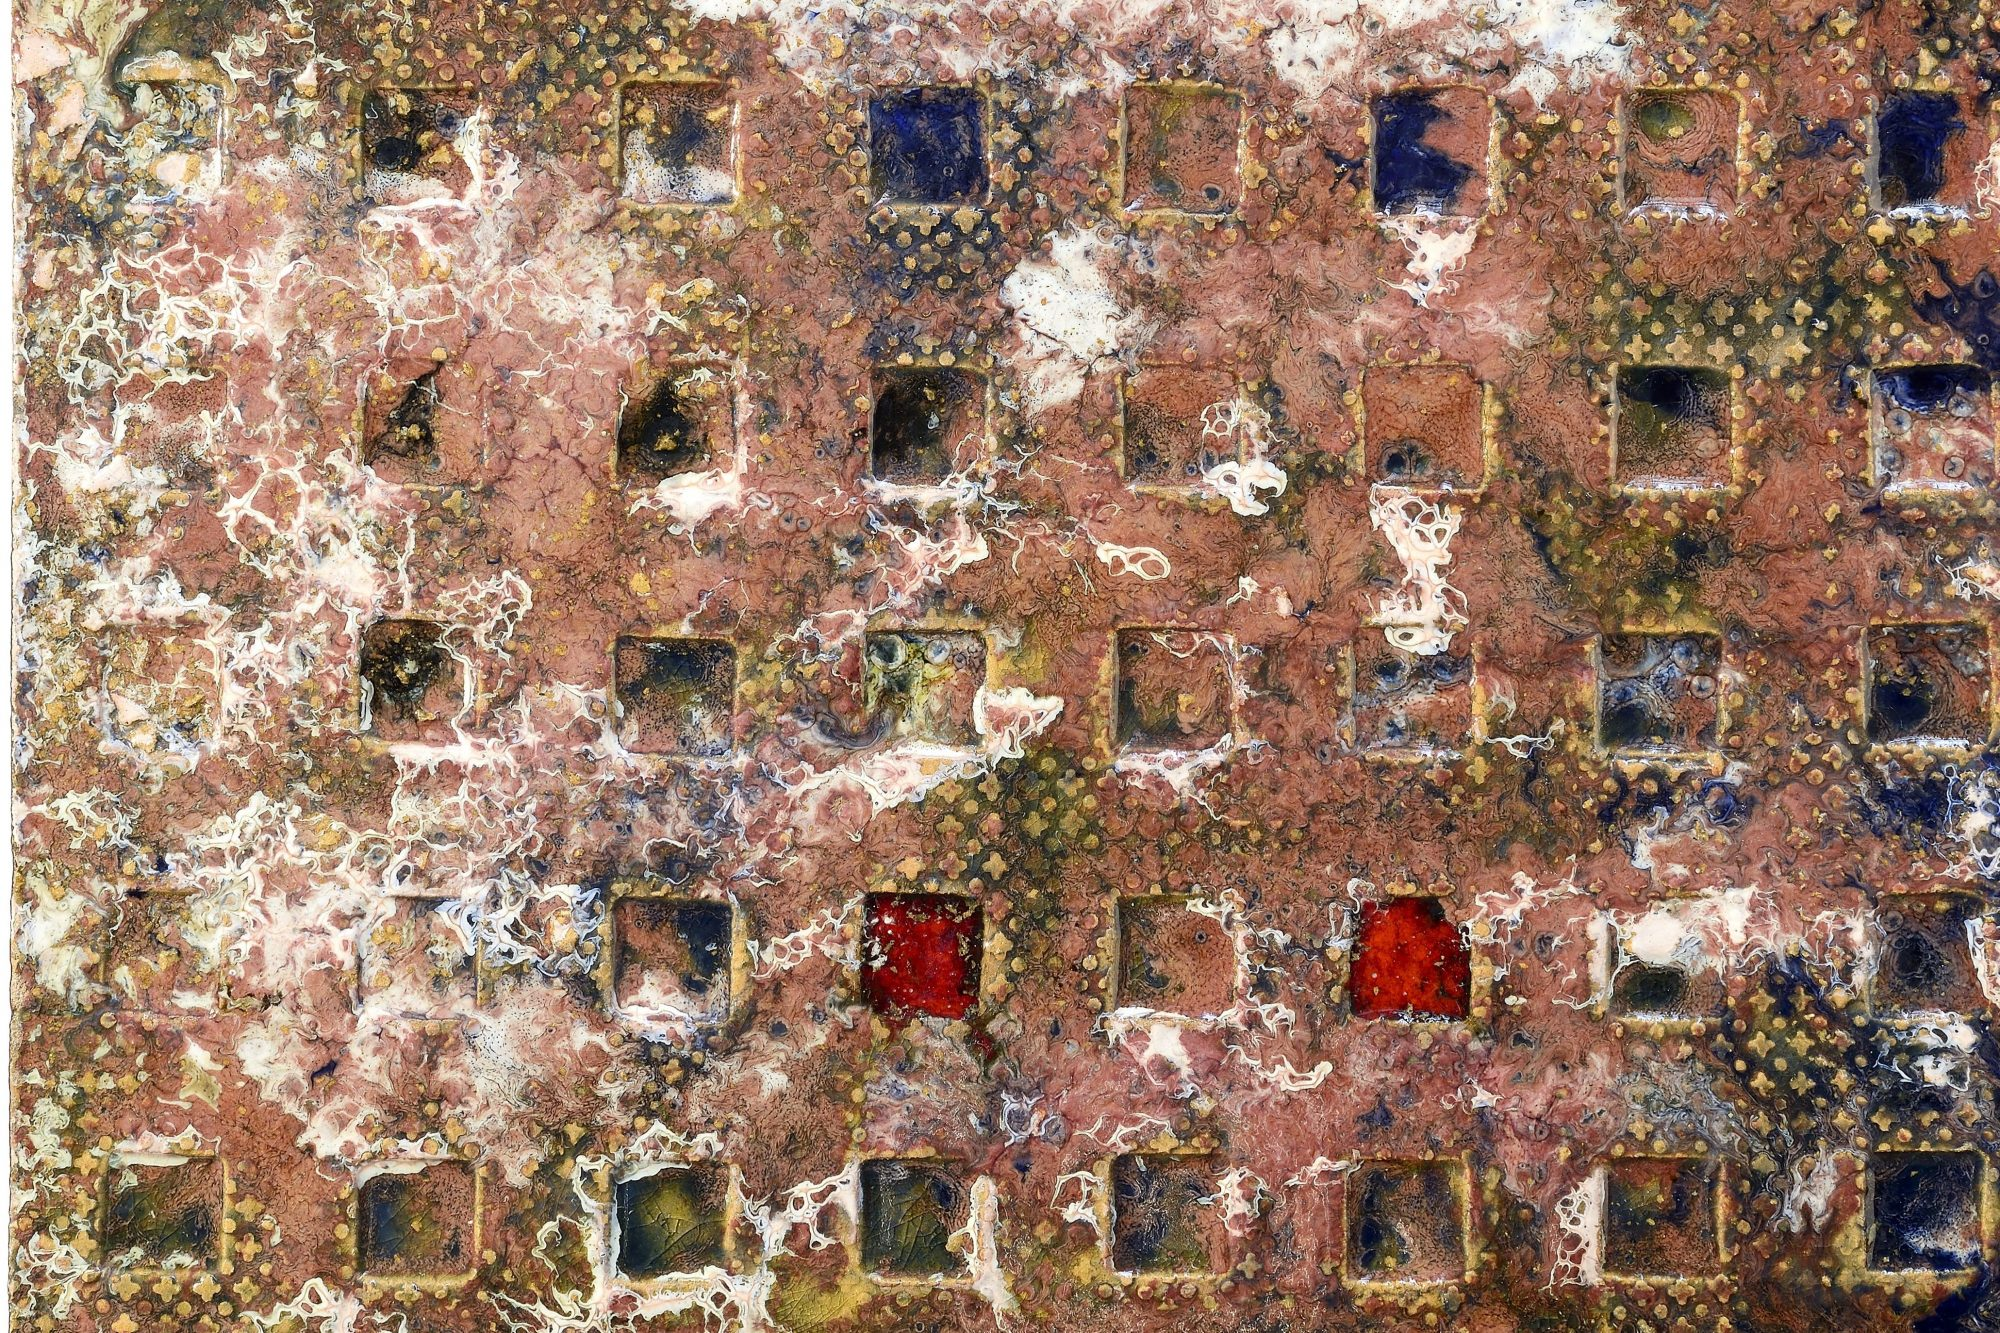 Fausto Melotti |  Bas relief panel - red squares